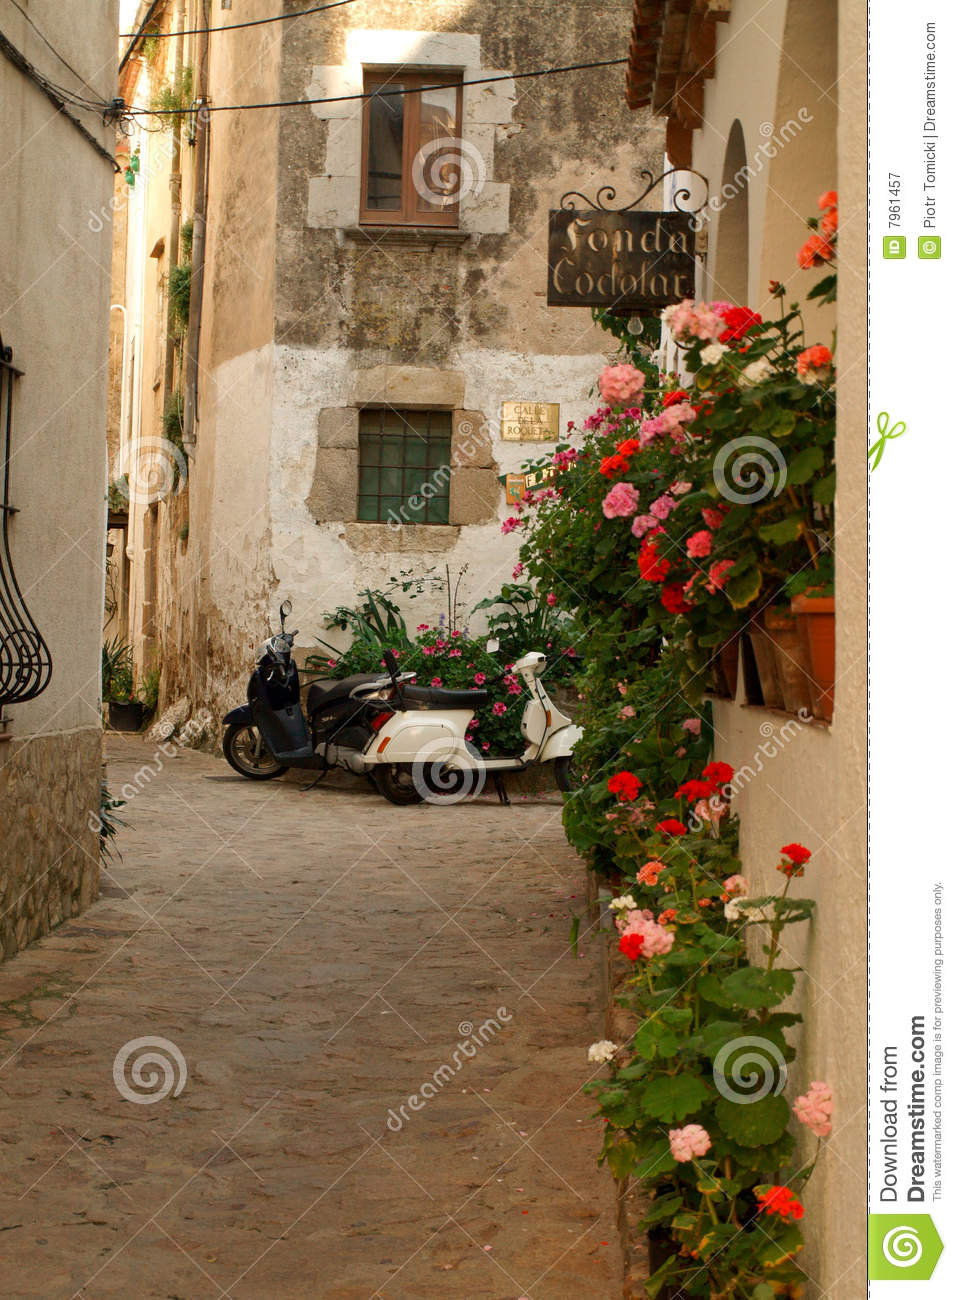 Small Spanish Town Stock Image. Image Of Trip, Alley